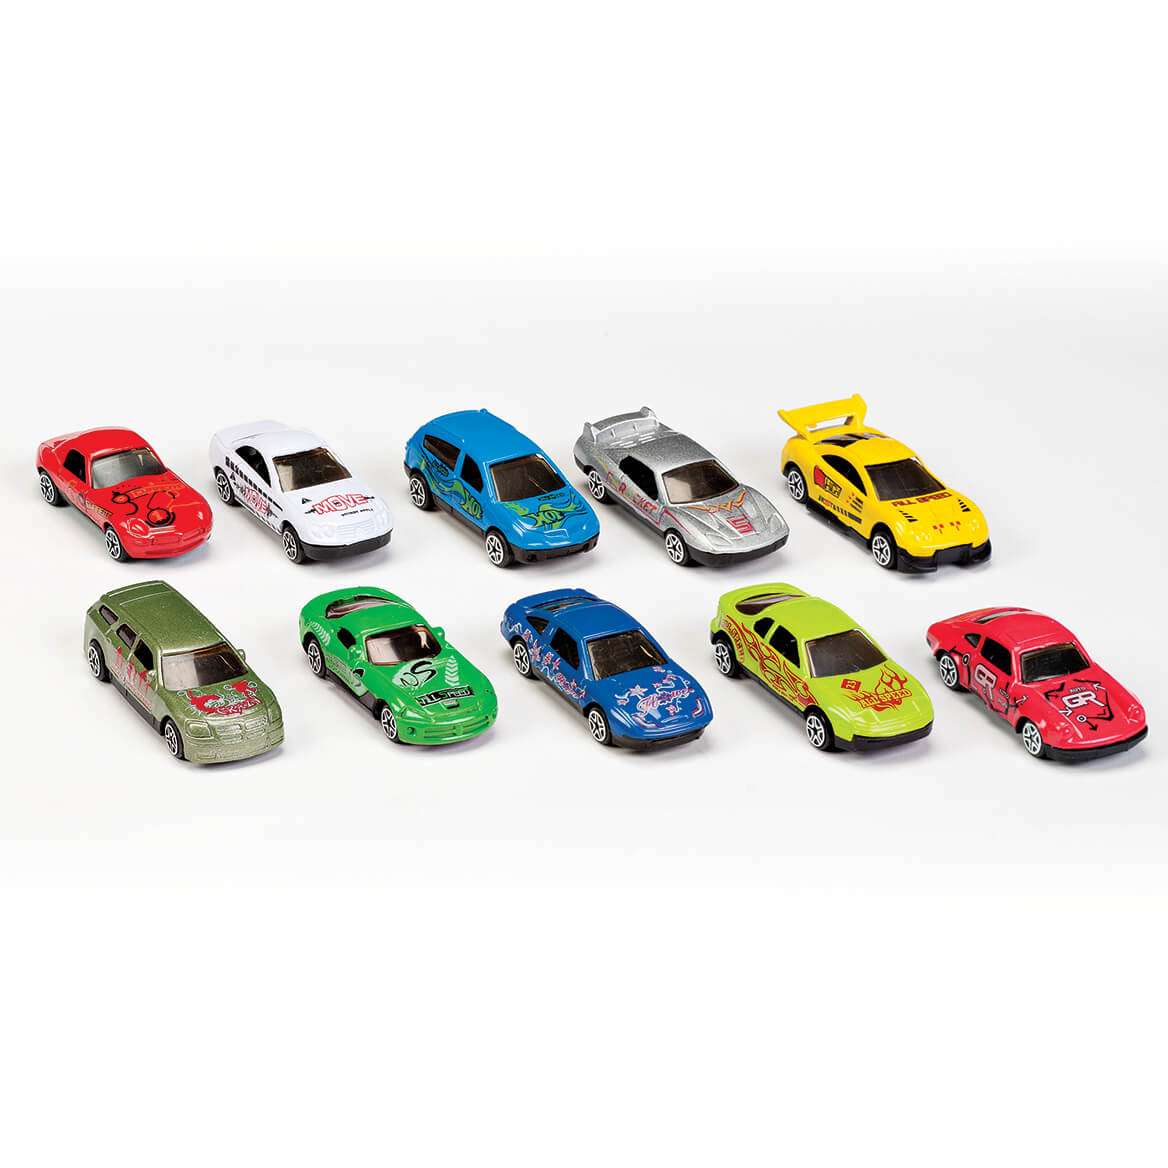 Floor Play Mat And Car Set And Case-310281